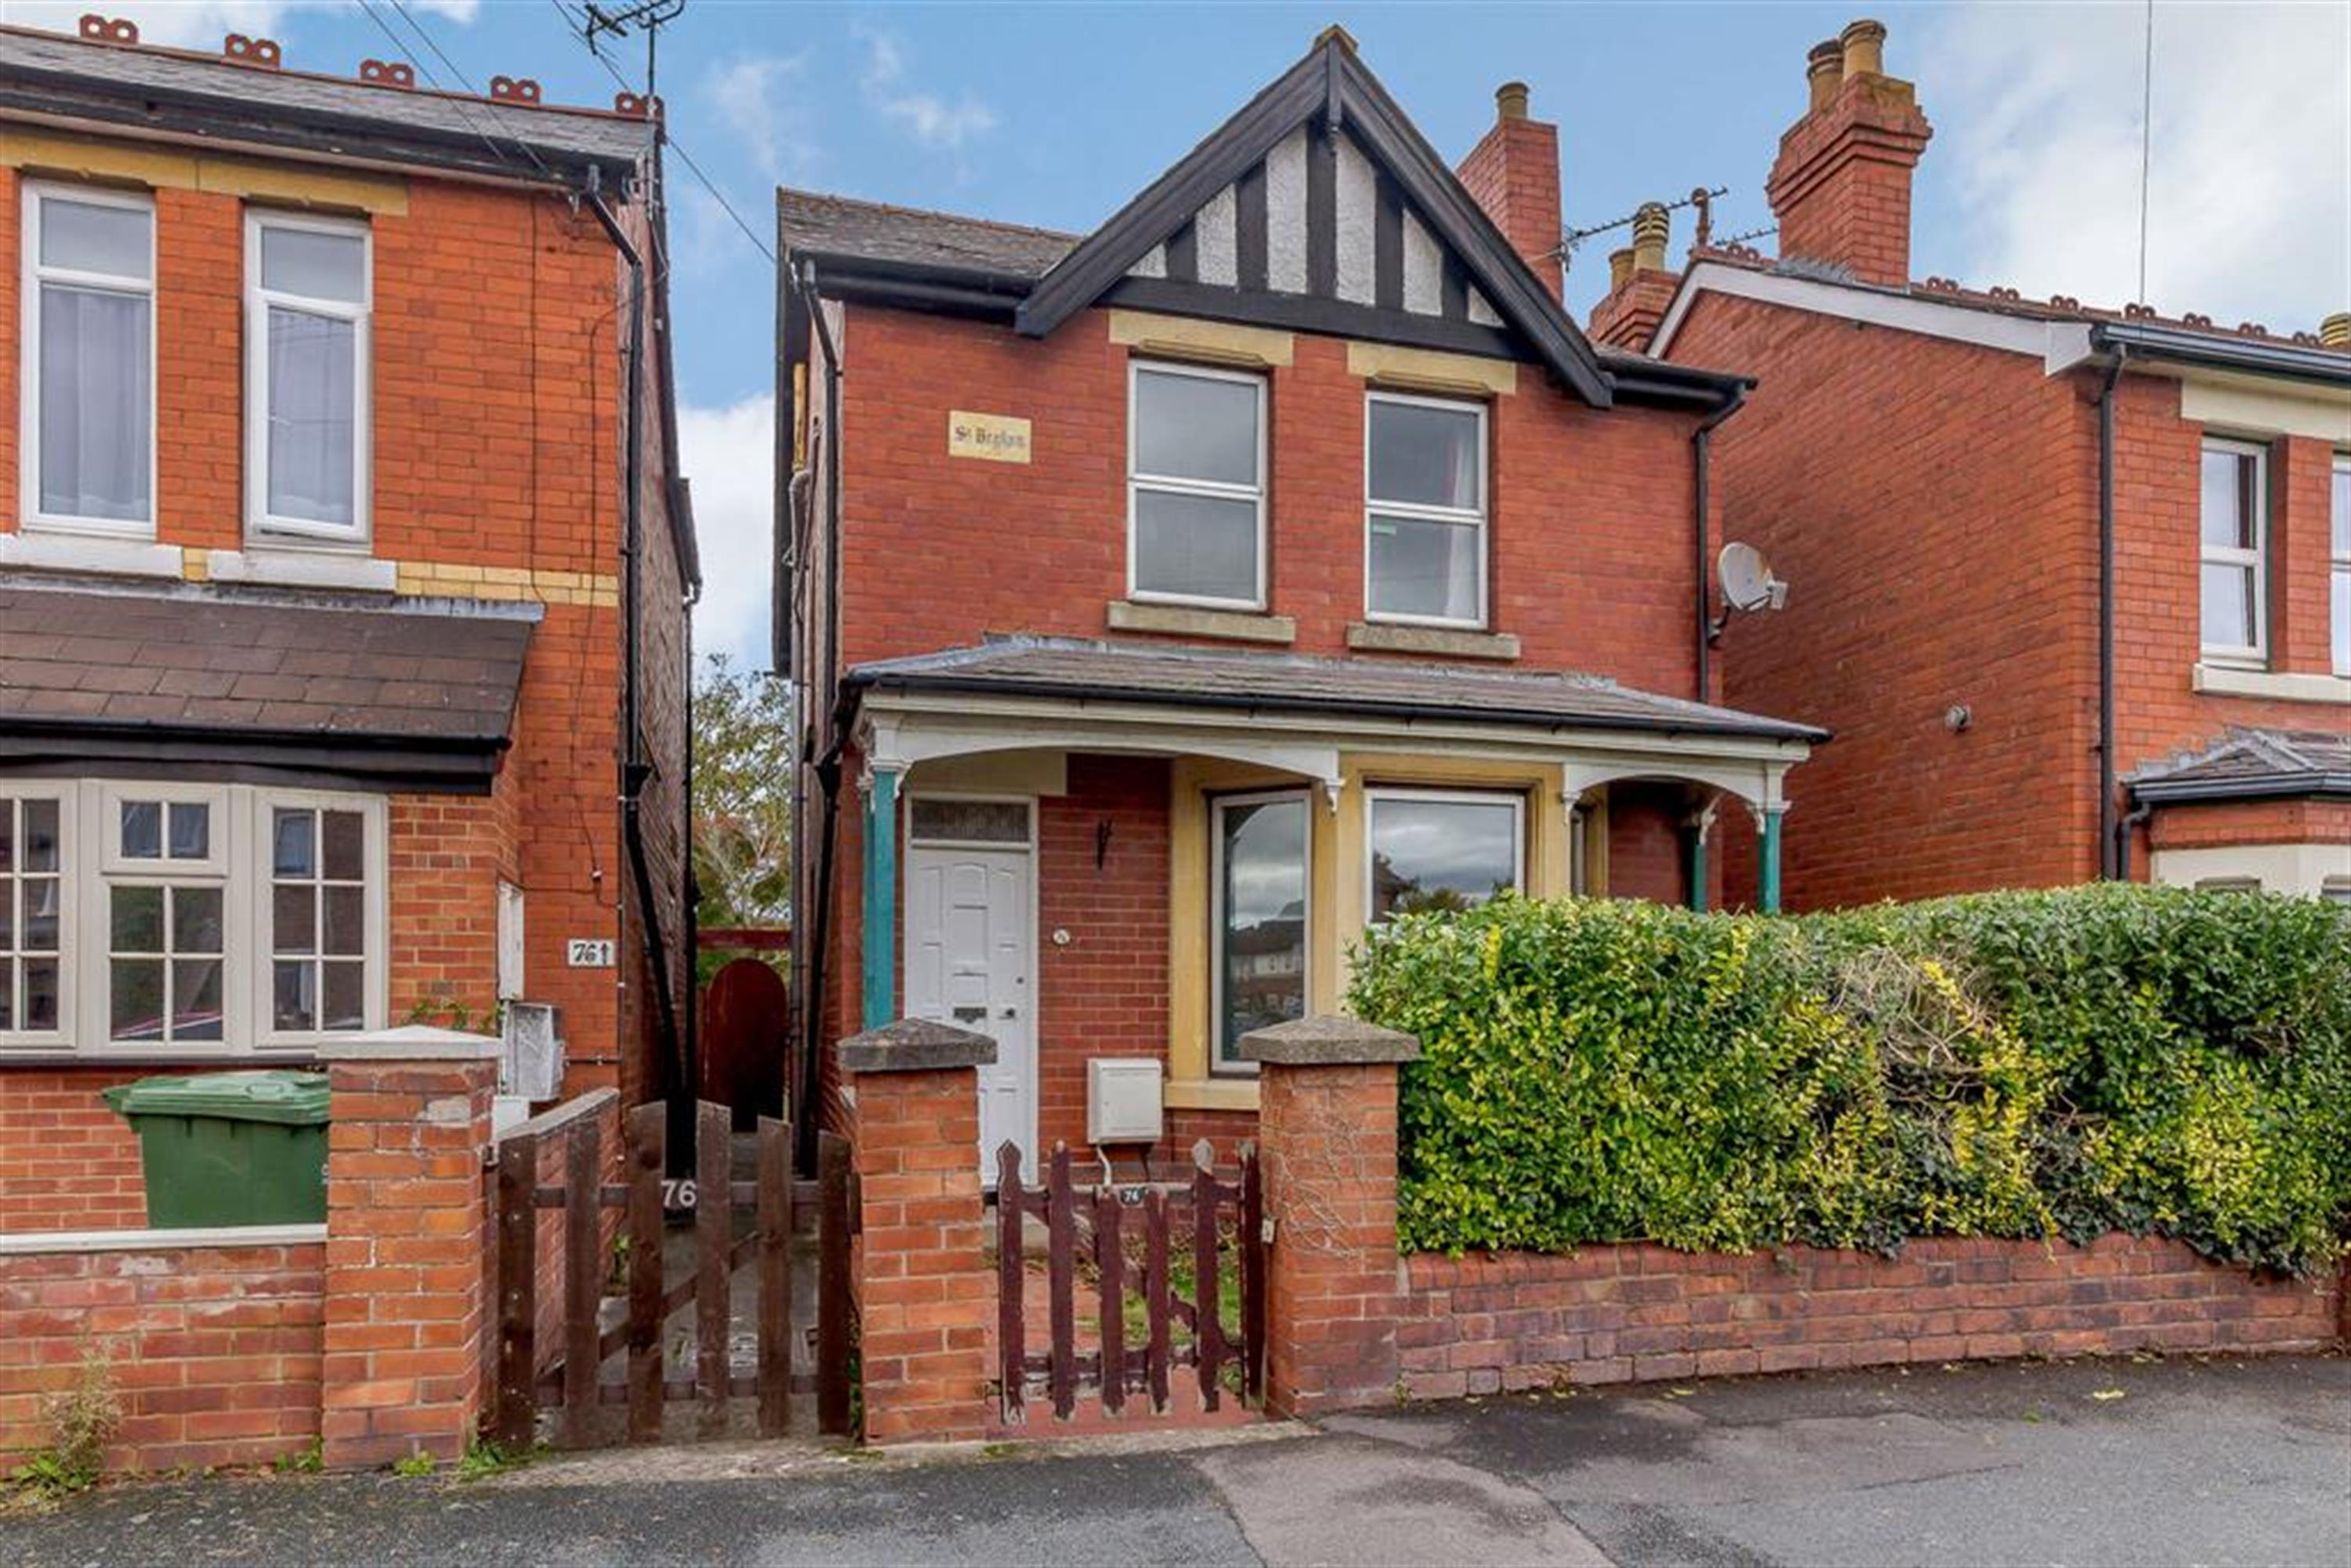 Hunderton Road, Hereford, HR2 7AP